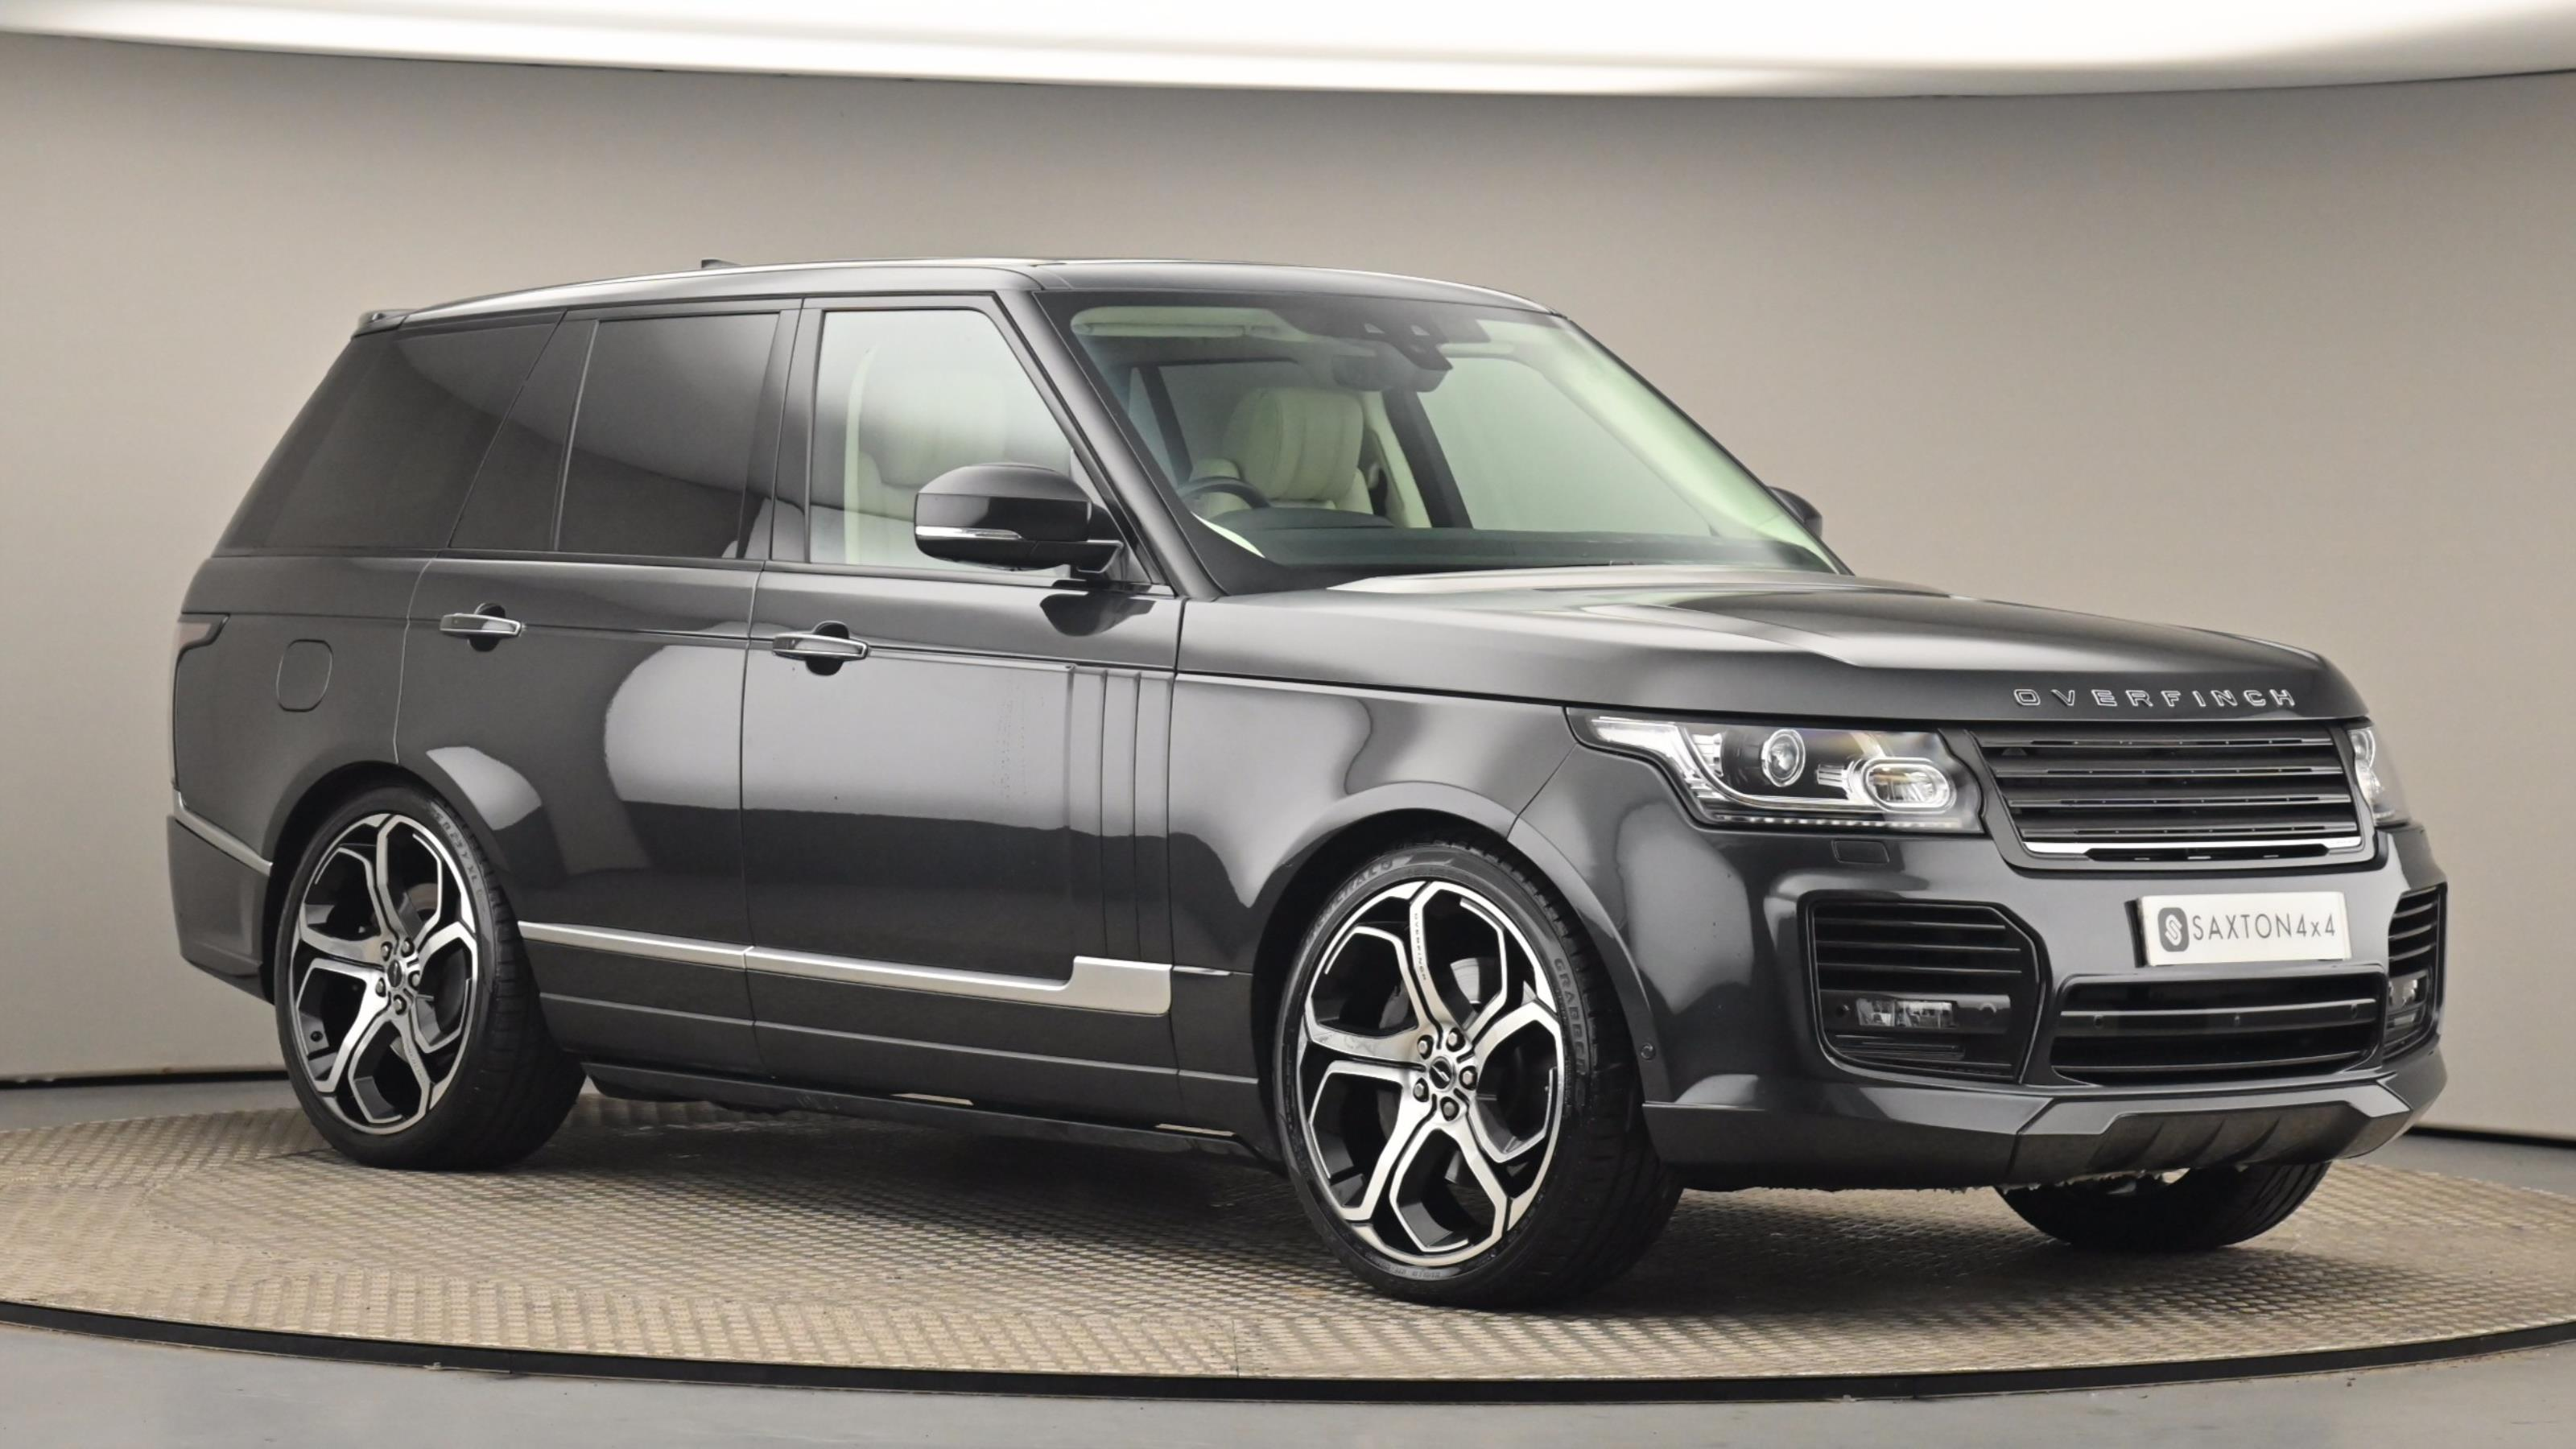 Used 2016 Land Rover RANGE ROVER 4.4 SDV8 Autobiography 4dr Auto at Saxton4x4